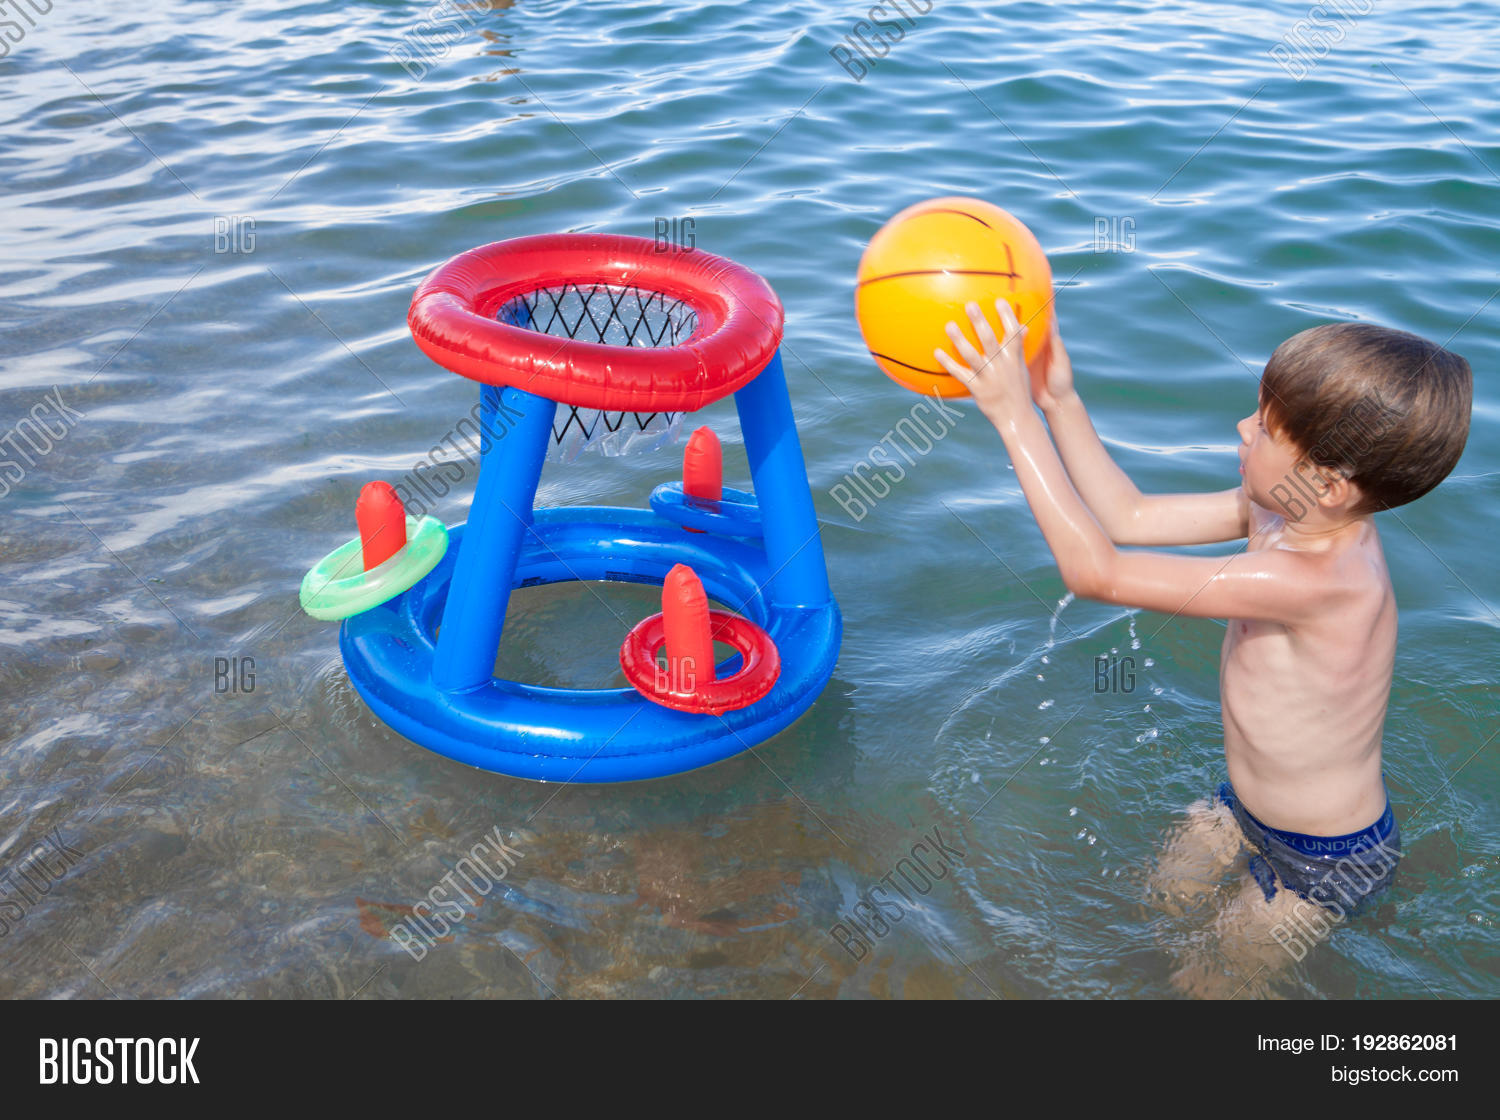 Boy On Beach Playing Image & Photo (Free Trial) | Bigstock